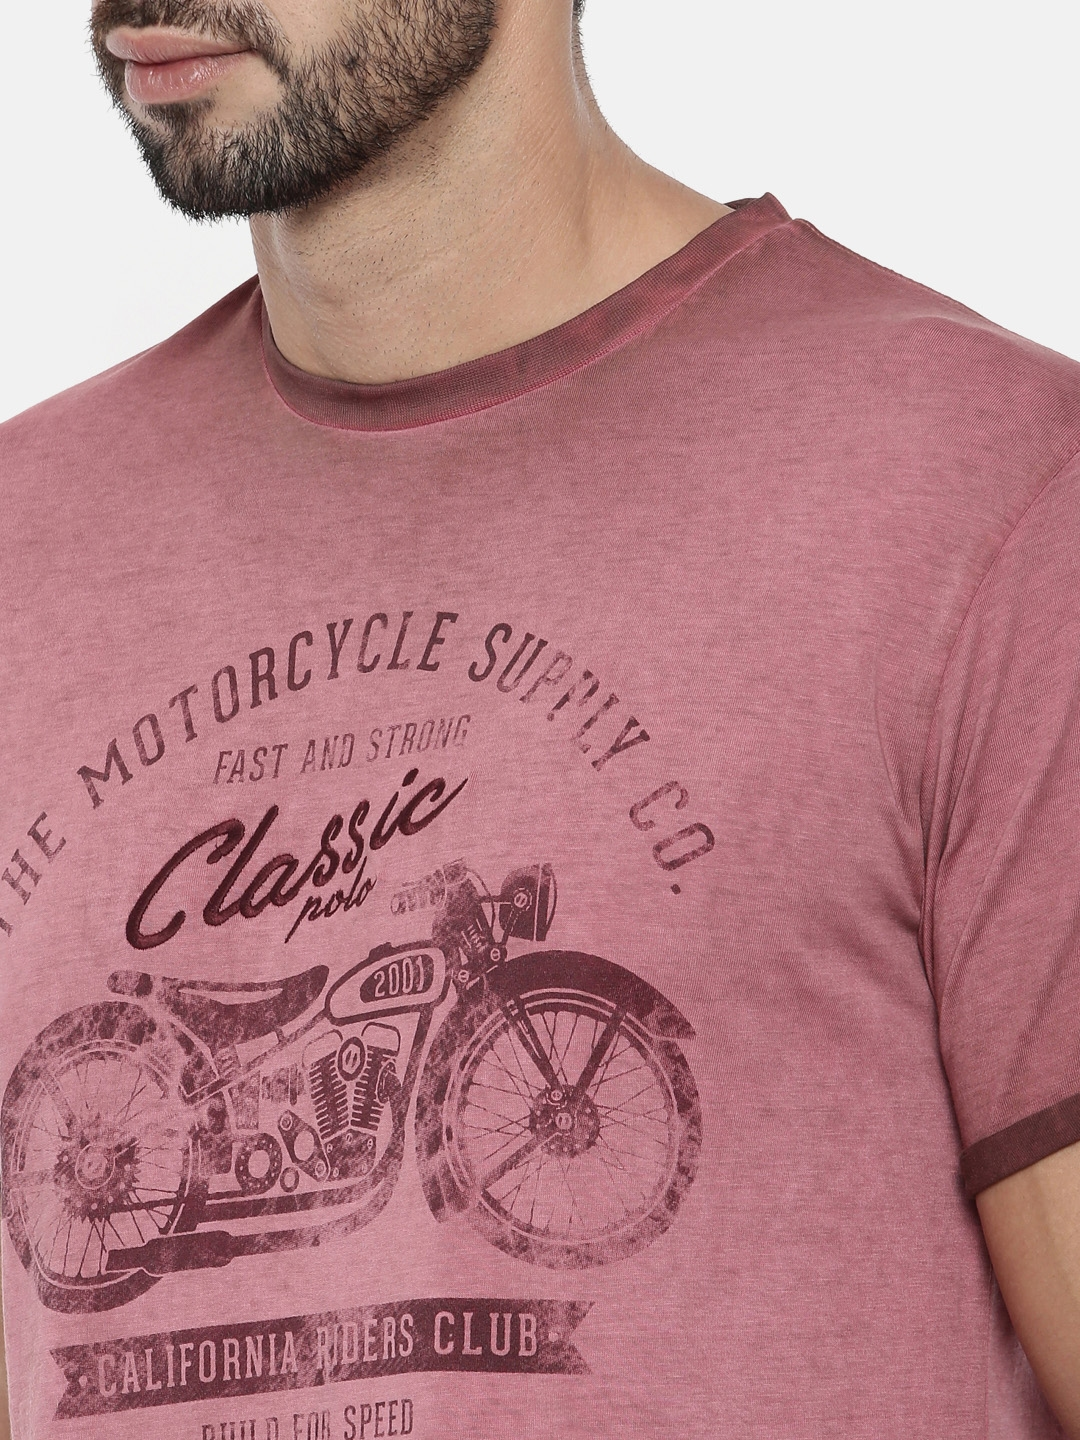 aebd4199 Buy Classic Polo Men Brown Printed Round Neck T Shirt - Tshirts for ...